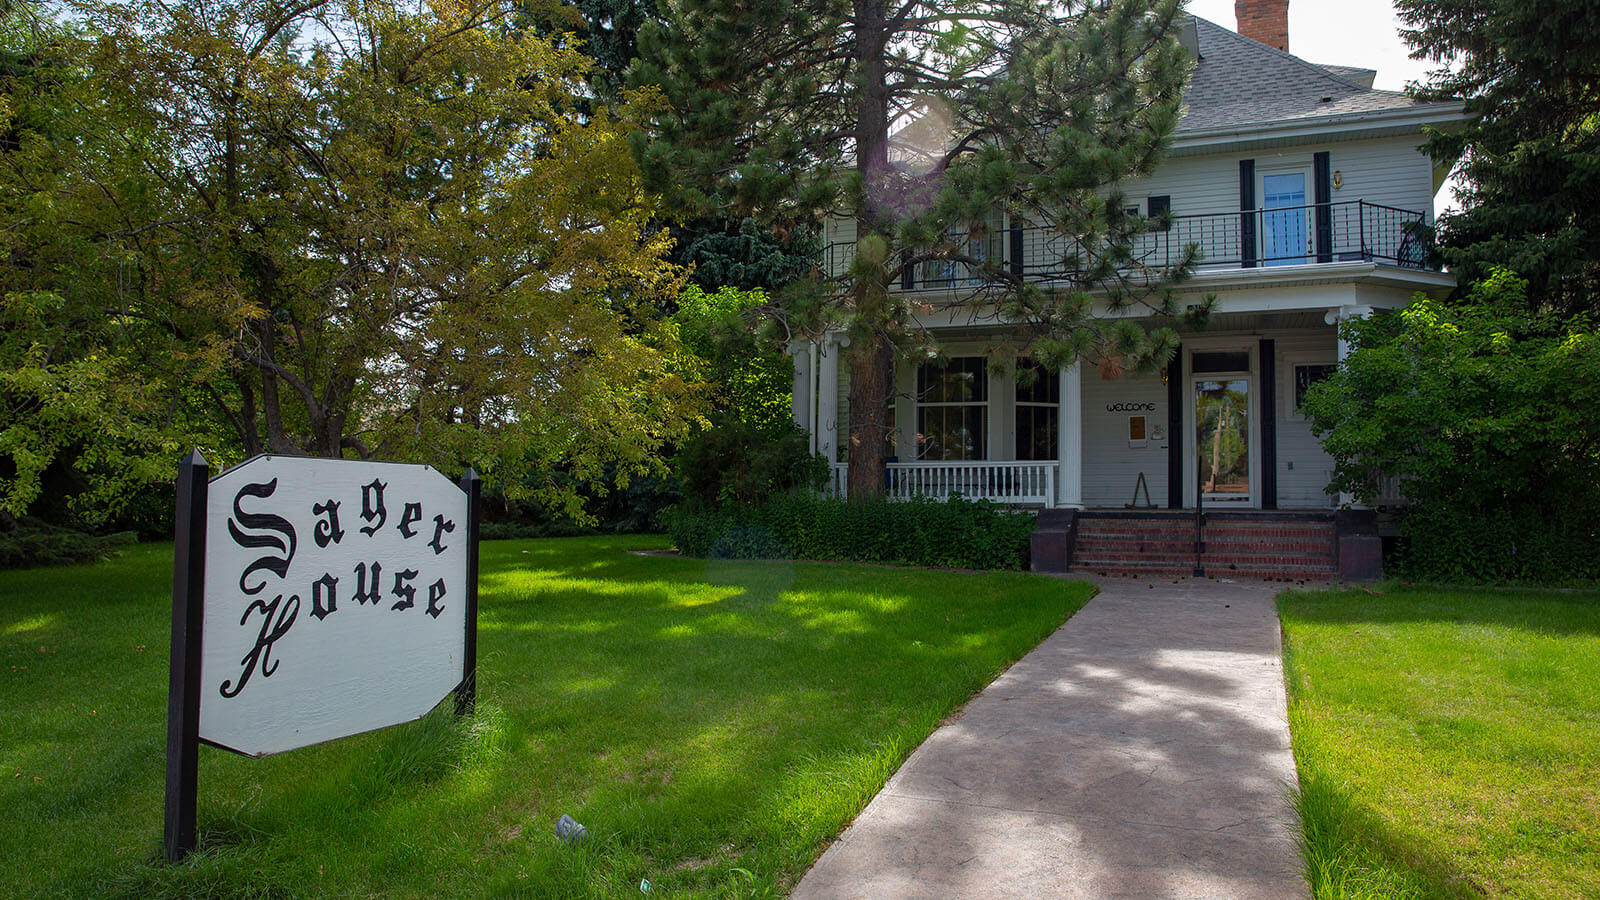 Sager House Bed and Breakfast